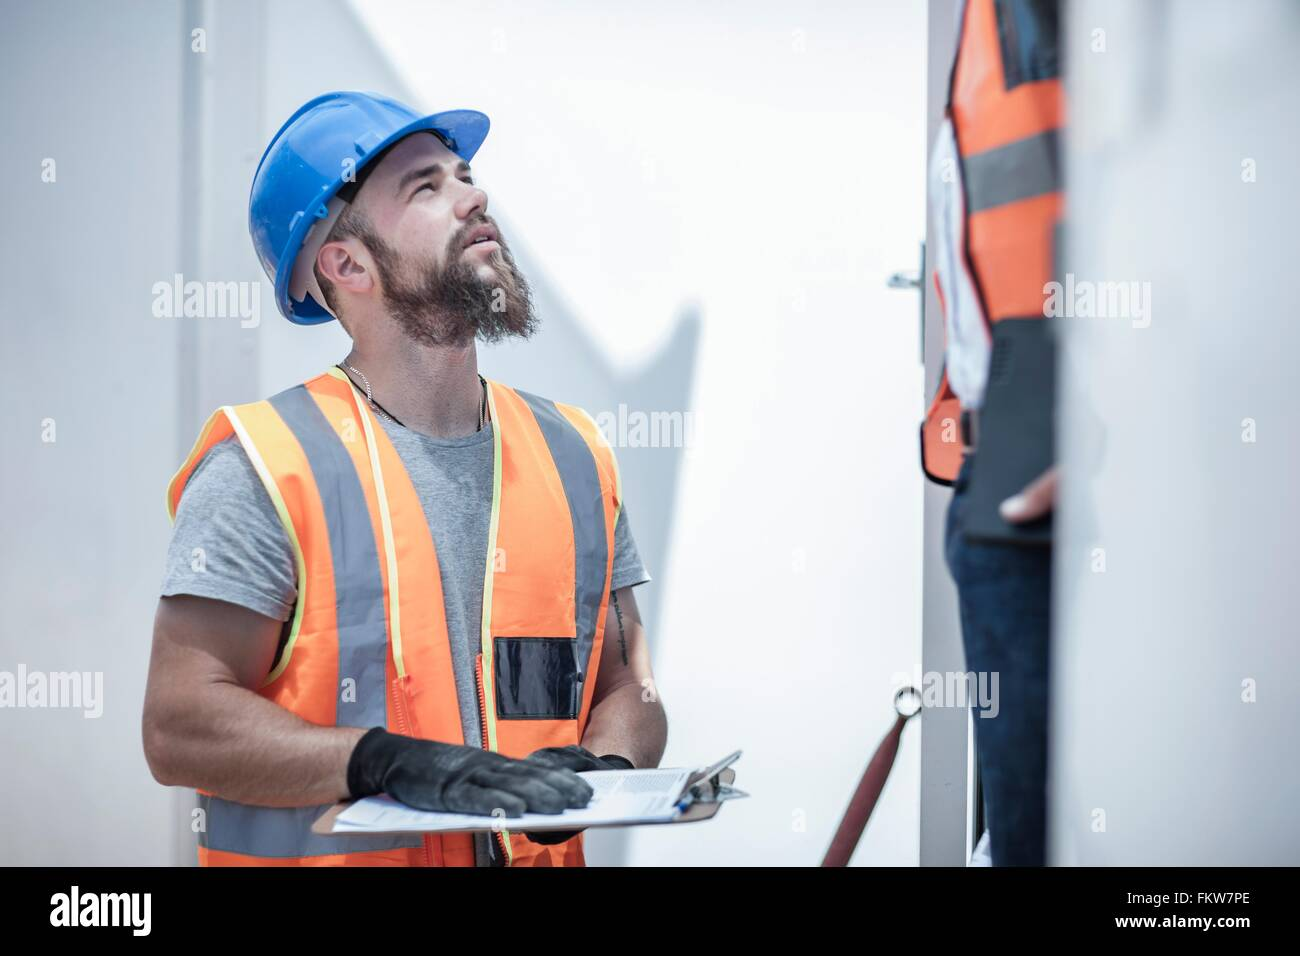 Construction worker talking to foreman from doorway of cabin on construction site - Stock Image